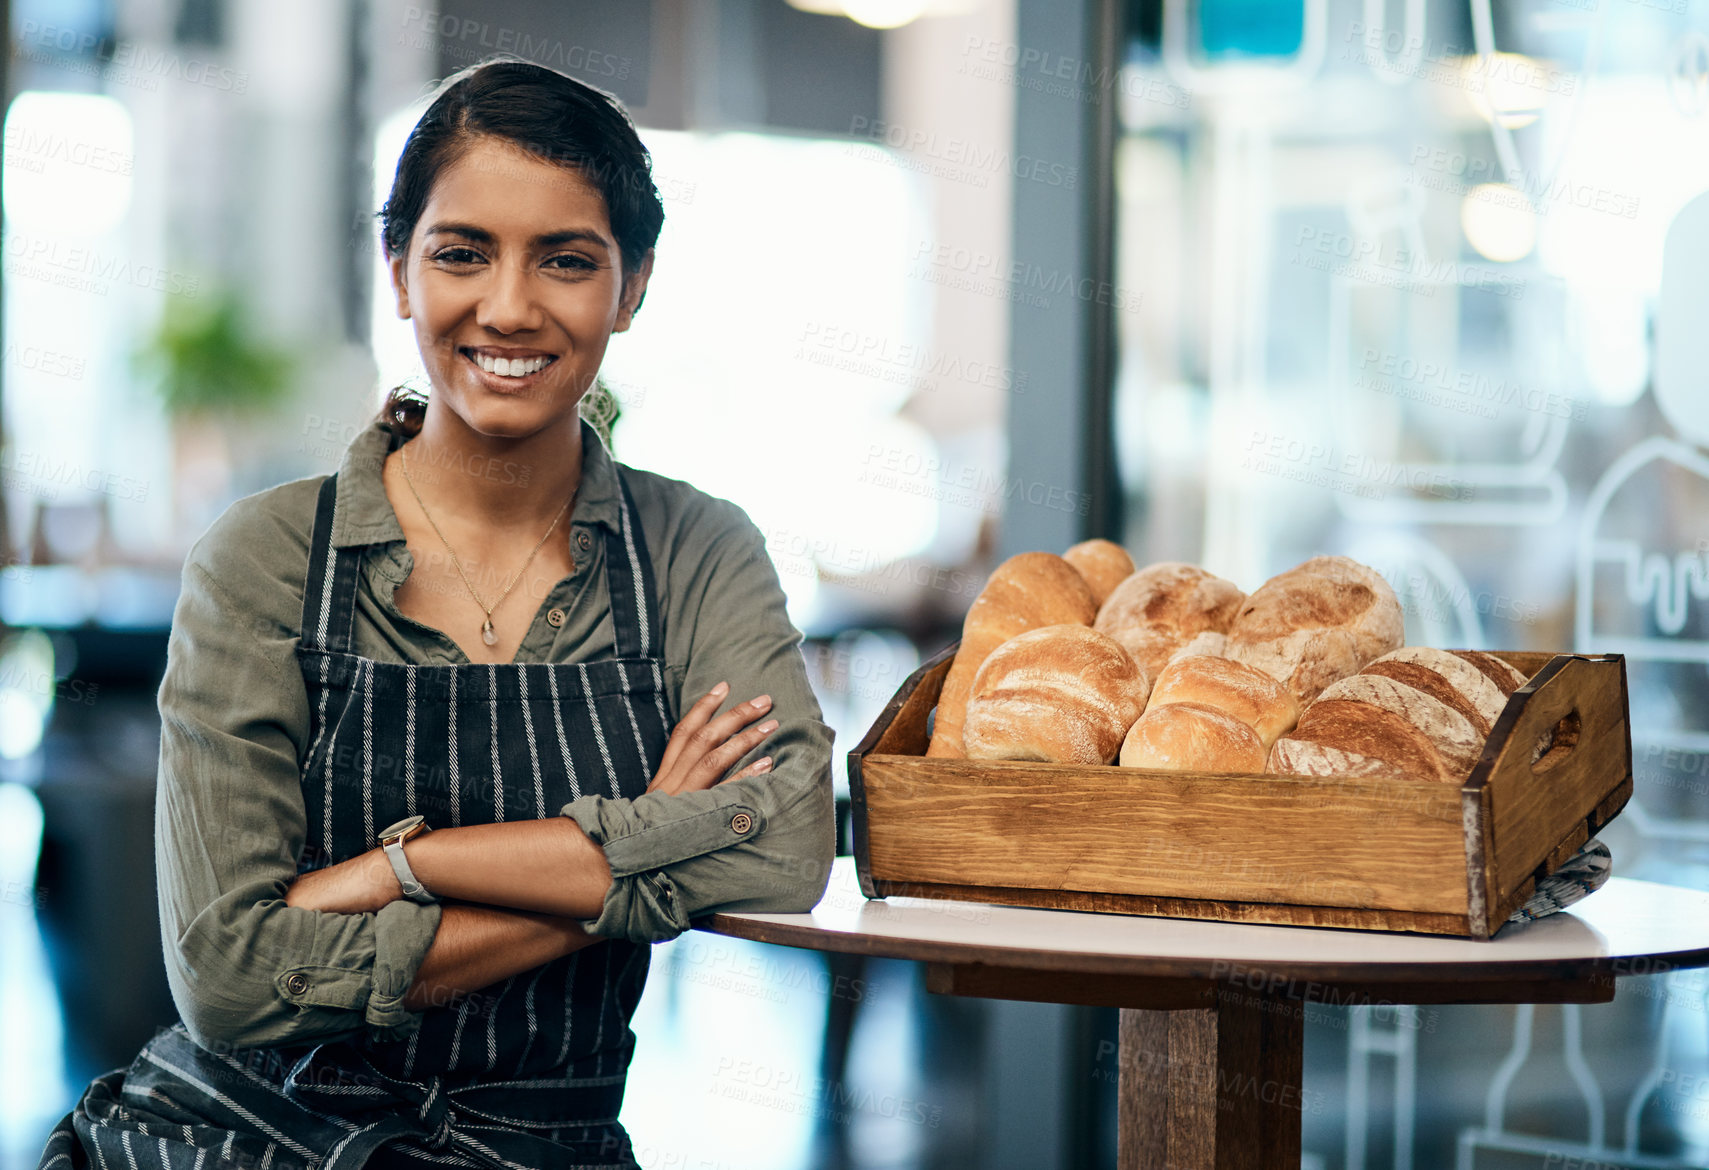 Buy stock photo Shot of a young woman serving a selection of freshly baked breads in her bakery